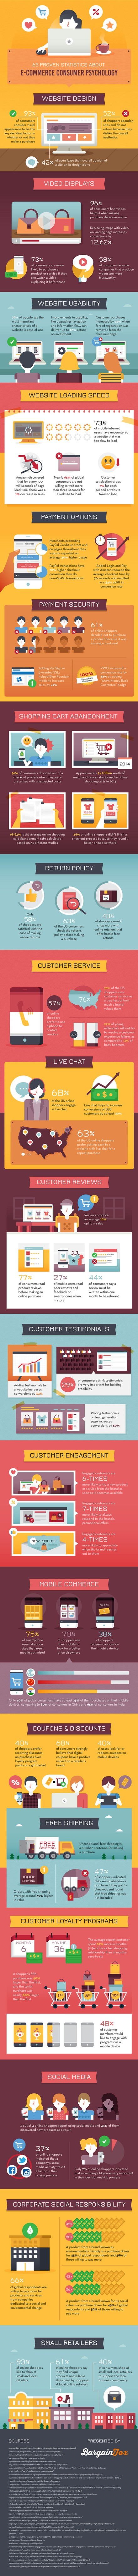 How to Increase Conversion Rates on eCommerce Sites' infographic